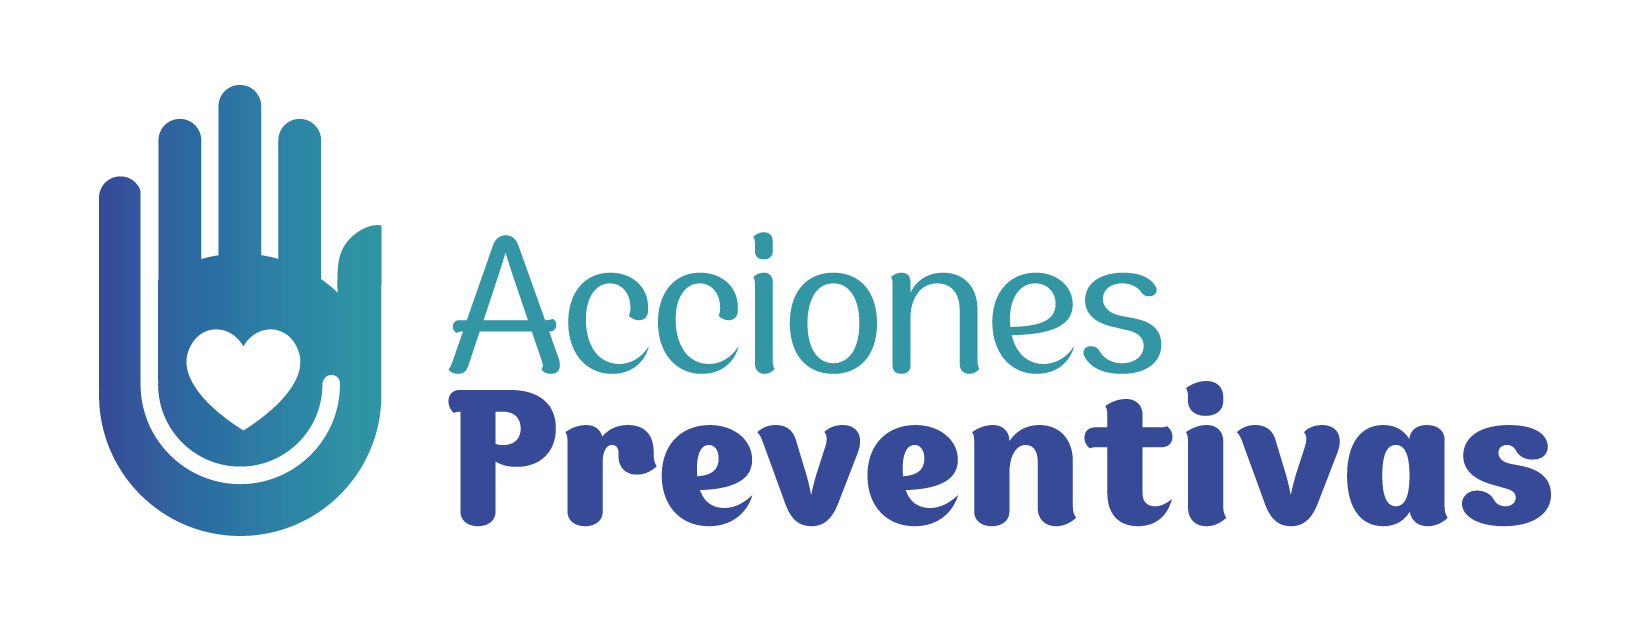 1_logo_acciones_preventivas_color-01